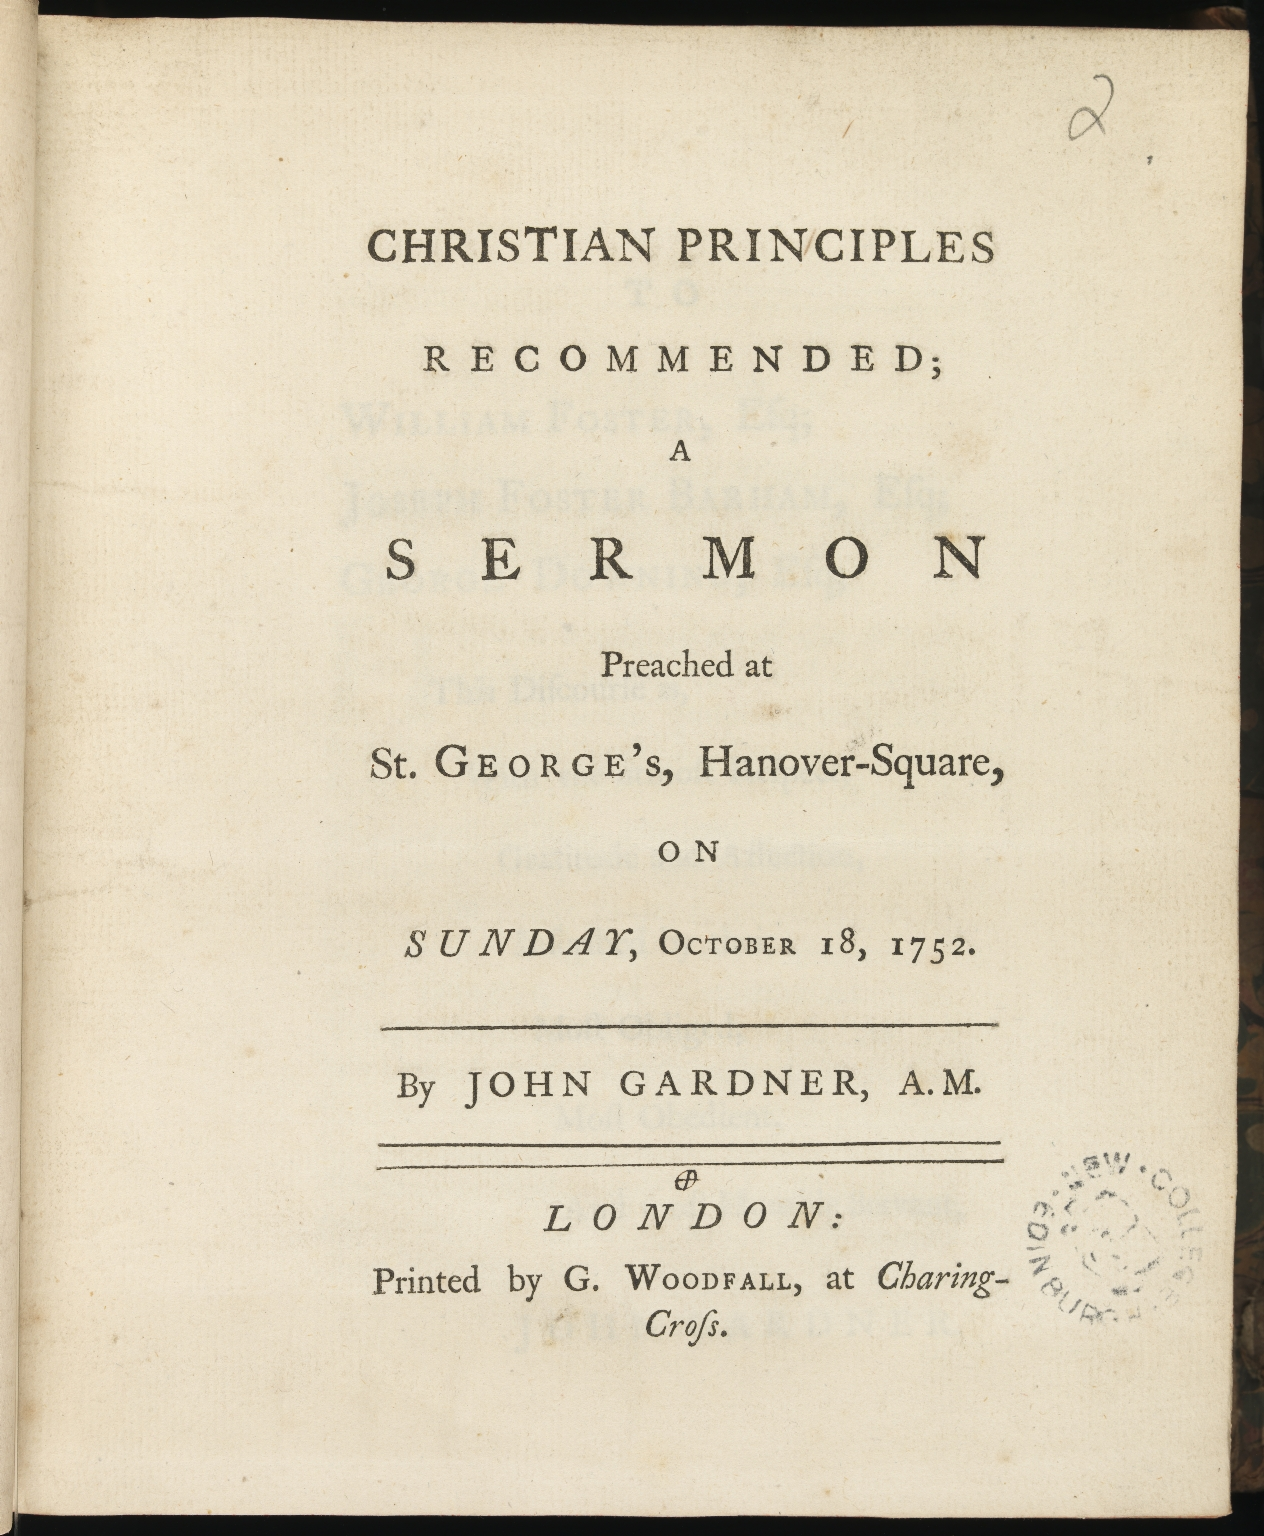 Christian principles recommended, Title page